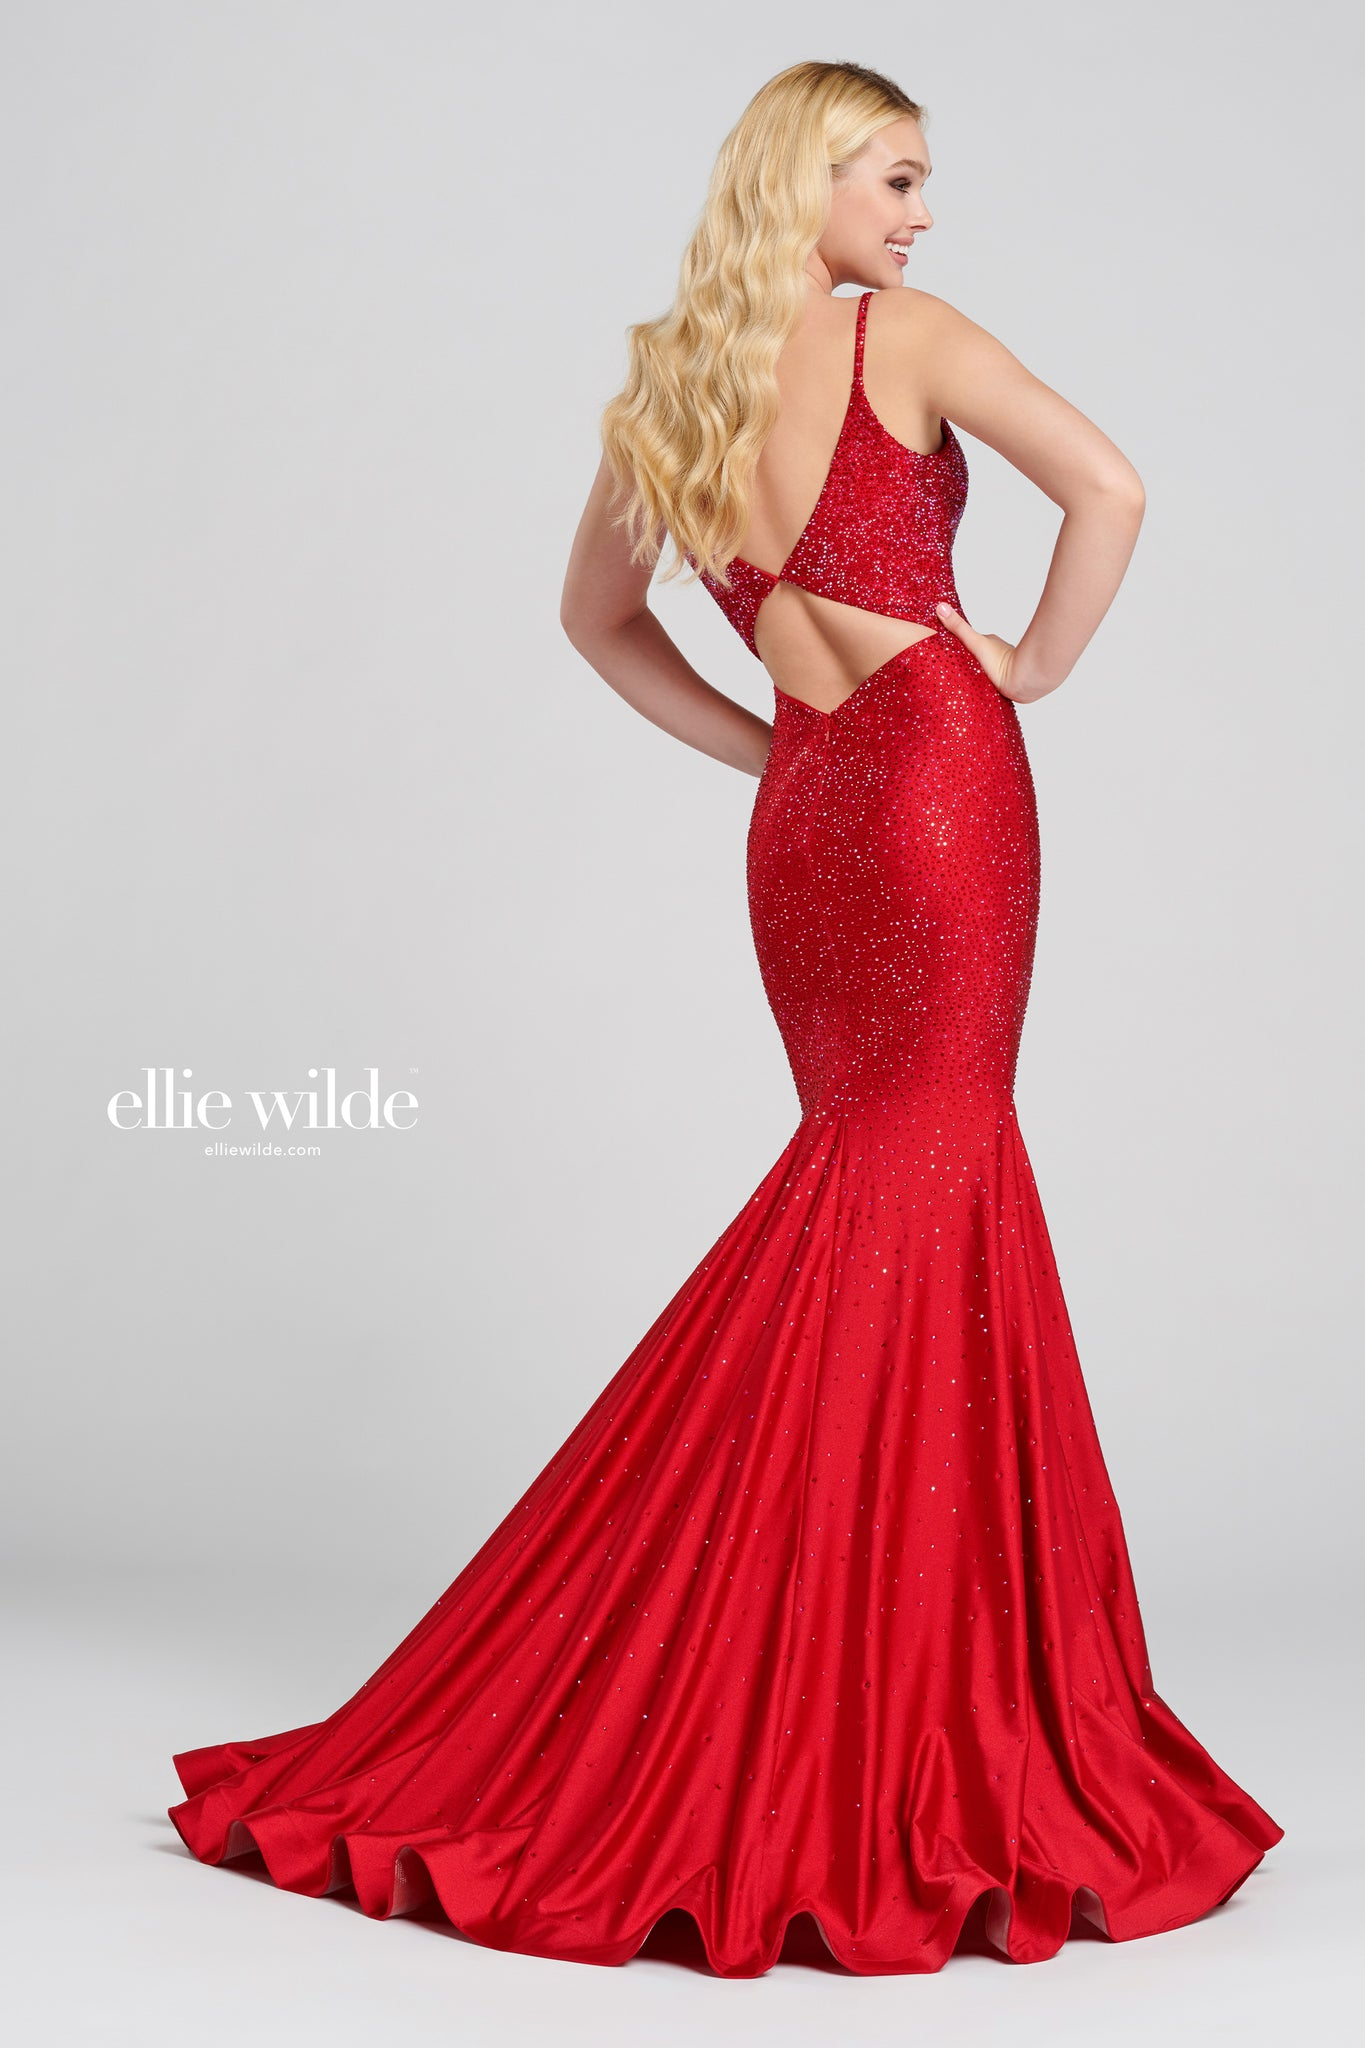 Ellie Wilde Embellished Red Evening Dress - Gissings Boutique